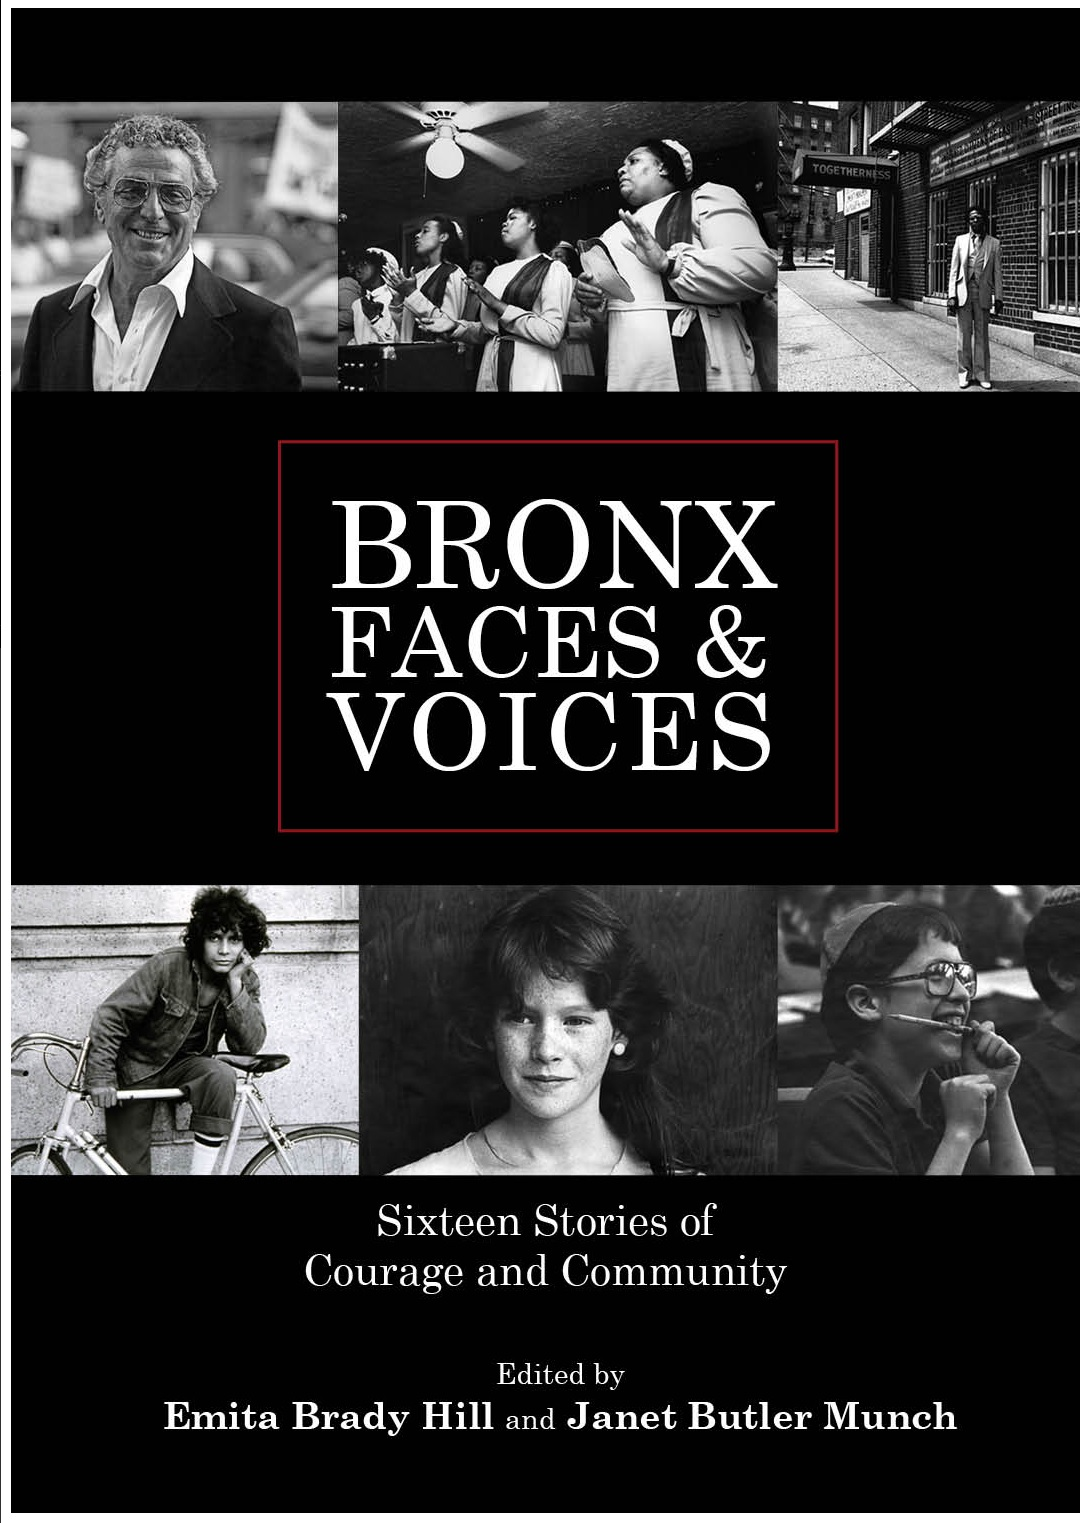 East Bronx History Forum, April 11